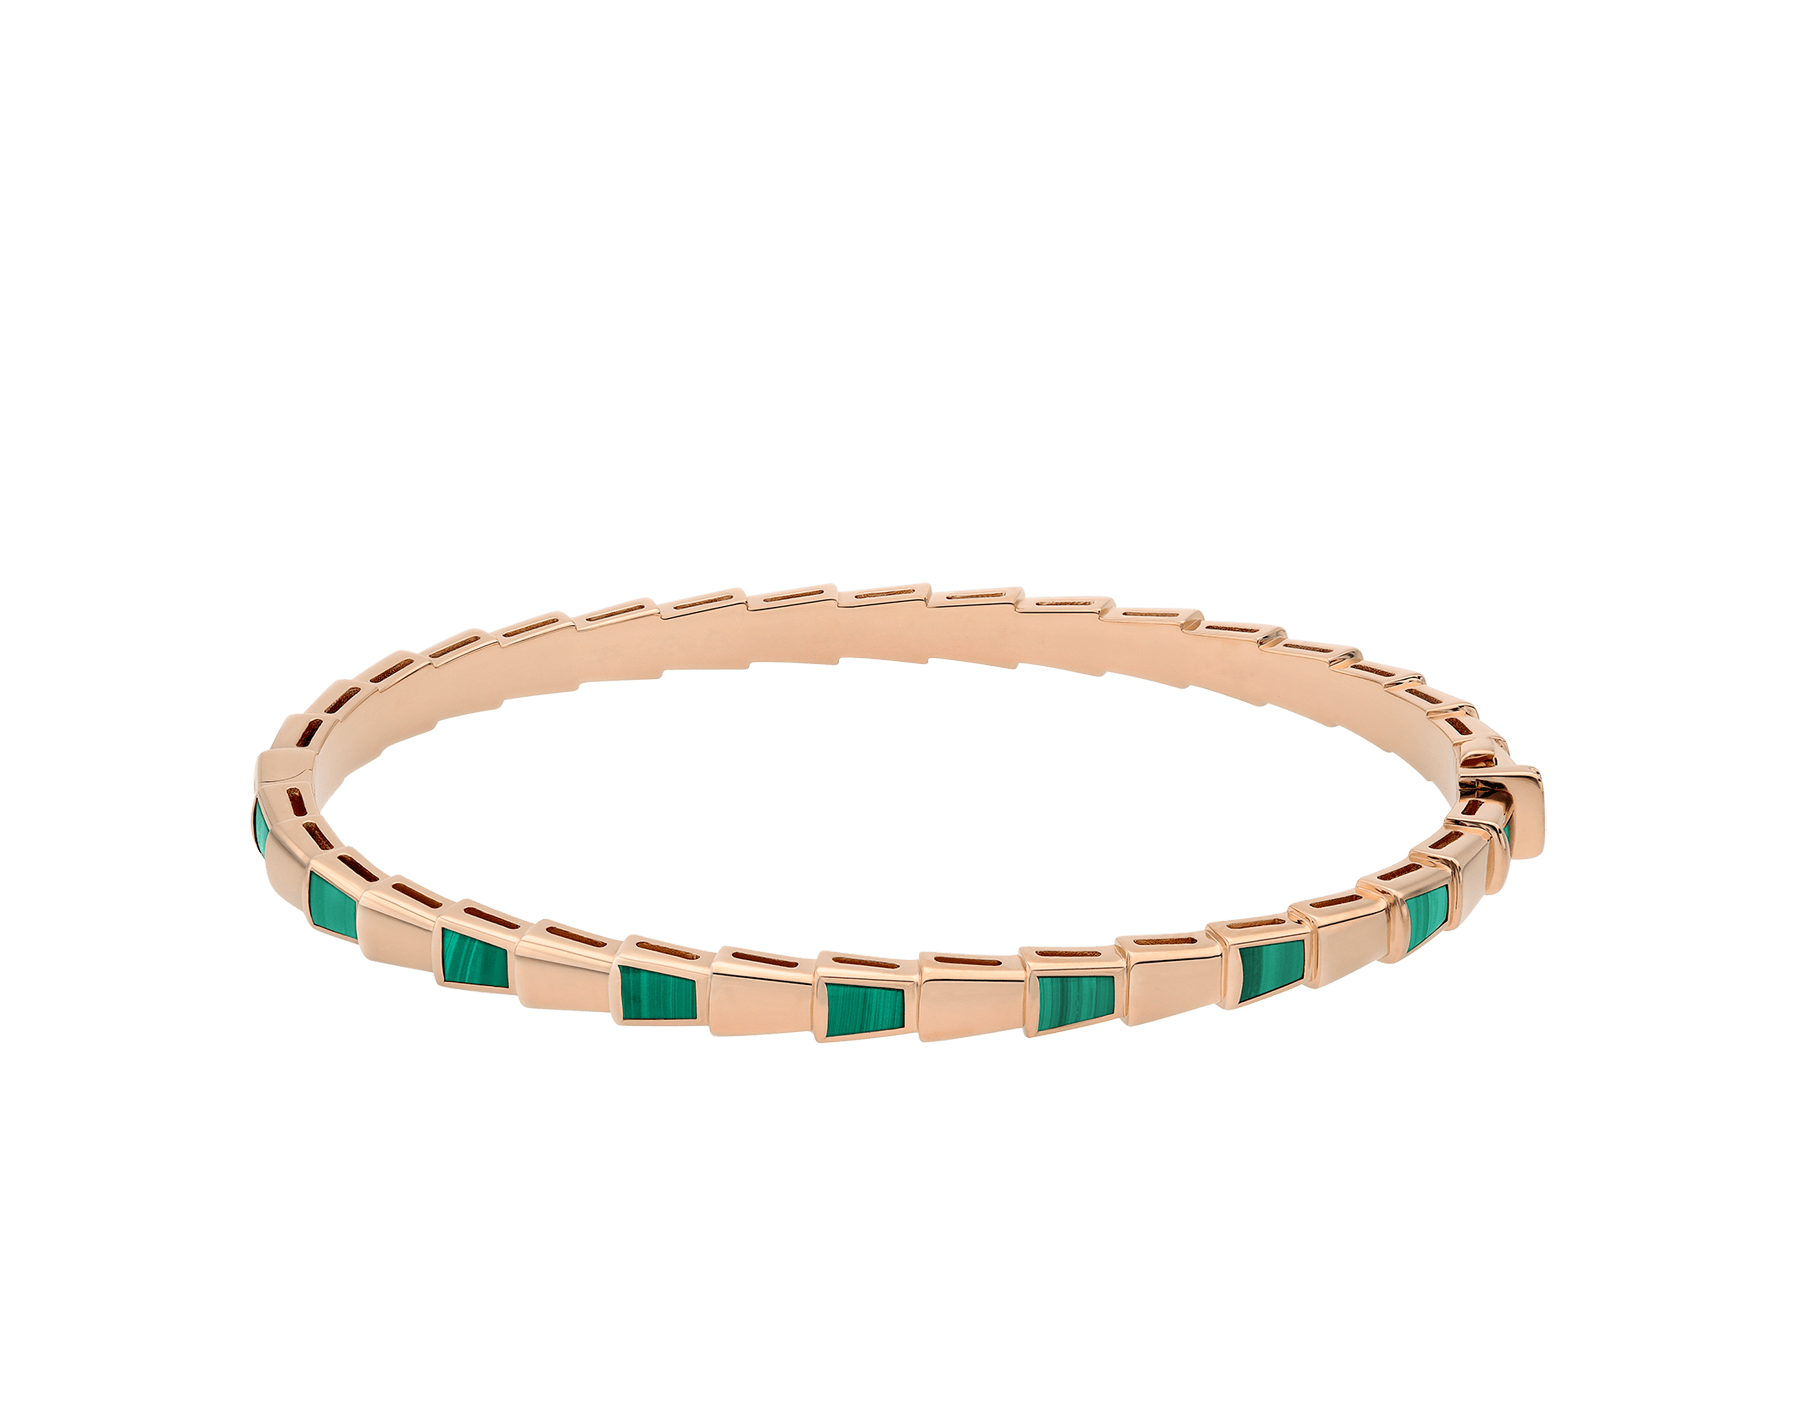 Serpenti Viper 18 kt rose gold thin bangle bracelet set with malachite elements BR858709 image 2